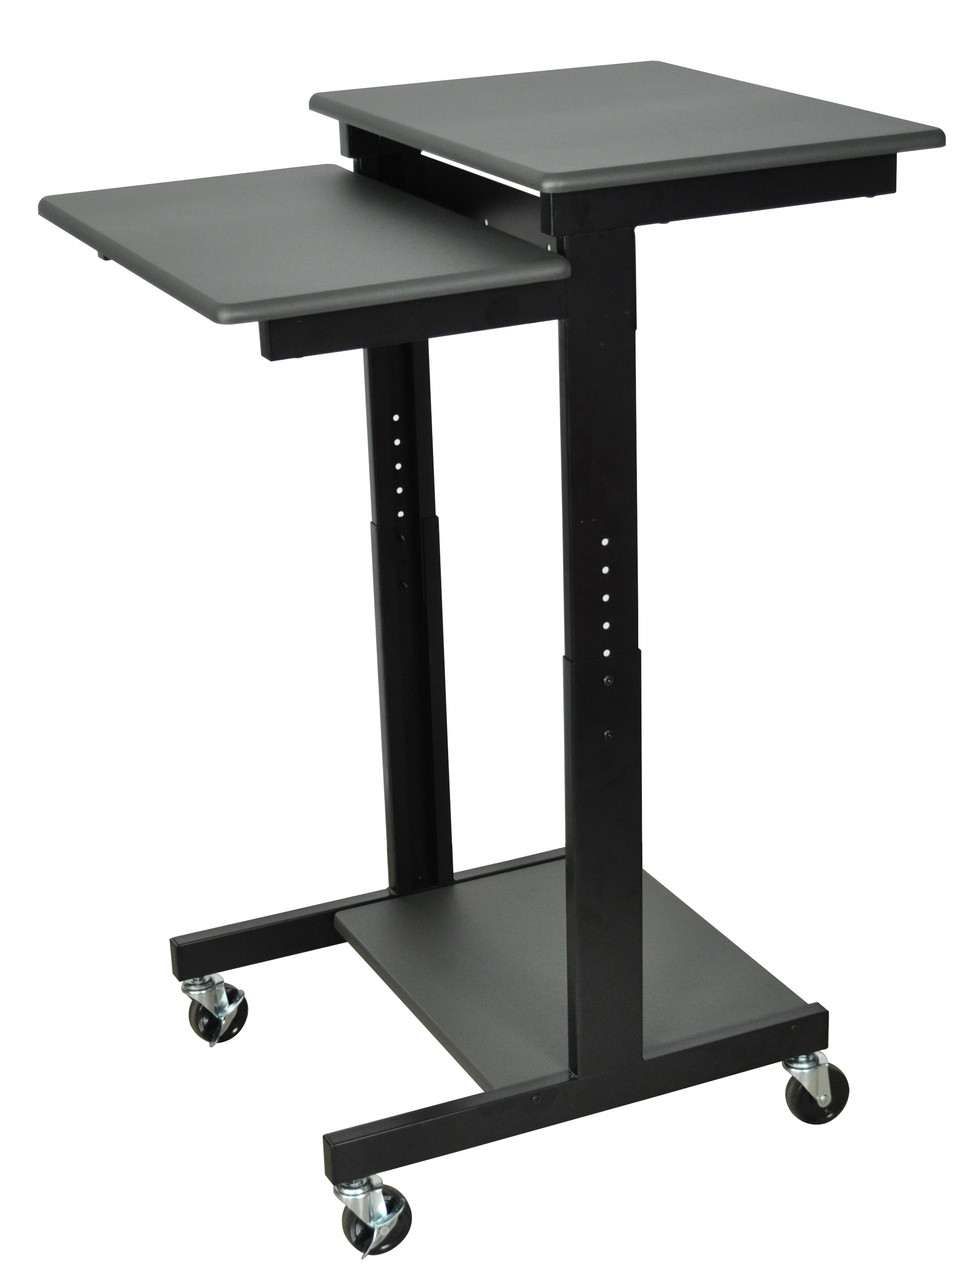 Luxor Presentation Cart DARK GRAY SURFACE/ BLACK FRAME PS3945